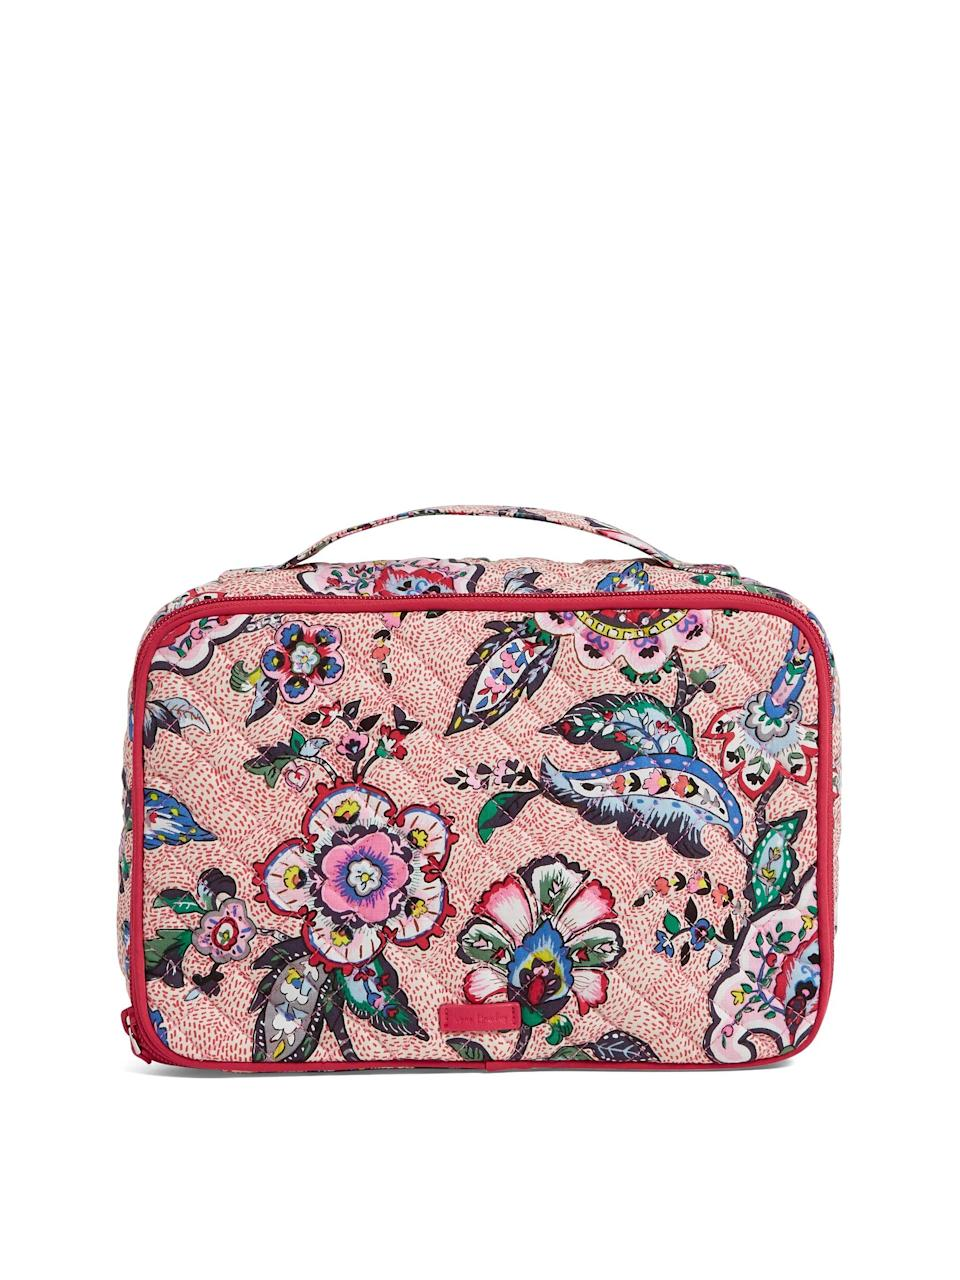 "<h3><strong>Vera Bradley </strong>Iconic Large Blush & Brush Case</h3><br><strong>The Sleepover Party-Ready Organizer</strong><br><br>The top handle makes it easy to carry, and the plush exterior reminds us of our favorite quilt at grandma's house — in the best way.<br><br><strong>The Hype: </strong>4.7 out of 5 stars and 47 reviews on <a href=""https://www.verabradley.com/us/product/Iconic-Large-Blush-&-Brush-Case/22115-22115M17"" rel=""nofollow noopener"" target=""_blank"" data-ylk=""slk:Vera Bradley"" class=""link rapid-noclick-resp"">Vera Bradley</a><br><br><strong>Organization Obsessives Say: </strong>""I love this cosmetic case! It is incredibly spacious with lots of storage compartments within. The clear flap that covers brushes is great for keeping them clean and the mesh pockets within the large compartment are great for organizing different items. I bring this bag with me whenever I travel and it holds all my makeup, lotions, shampoo/ conditioner, body wash, toothbrush and toothpaste. This makes traveling an ease because all of my cosmetics are kept together!"" — Caitlin, Vera Bradley Reviewer<br><br><strong>Vera Bradley</strong> Iconic Large Blush & Brush Case, $, available at <a href=""https://go.skimresources.com/?id=30283X879131&url=https%3A%2F%2Fwww.walmart.com%2Fip%2FIconic-Large-Blush-Brush-Case%2F608573657"" rel=""nofollow noopener"" target=""_blank"" data-ylk=""slk:Walmart"" class=""link rapid-noclick-resp"">Walmart</a>"